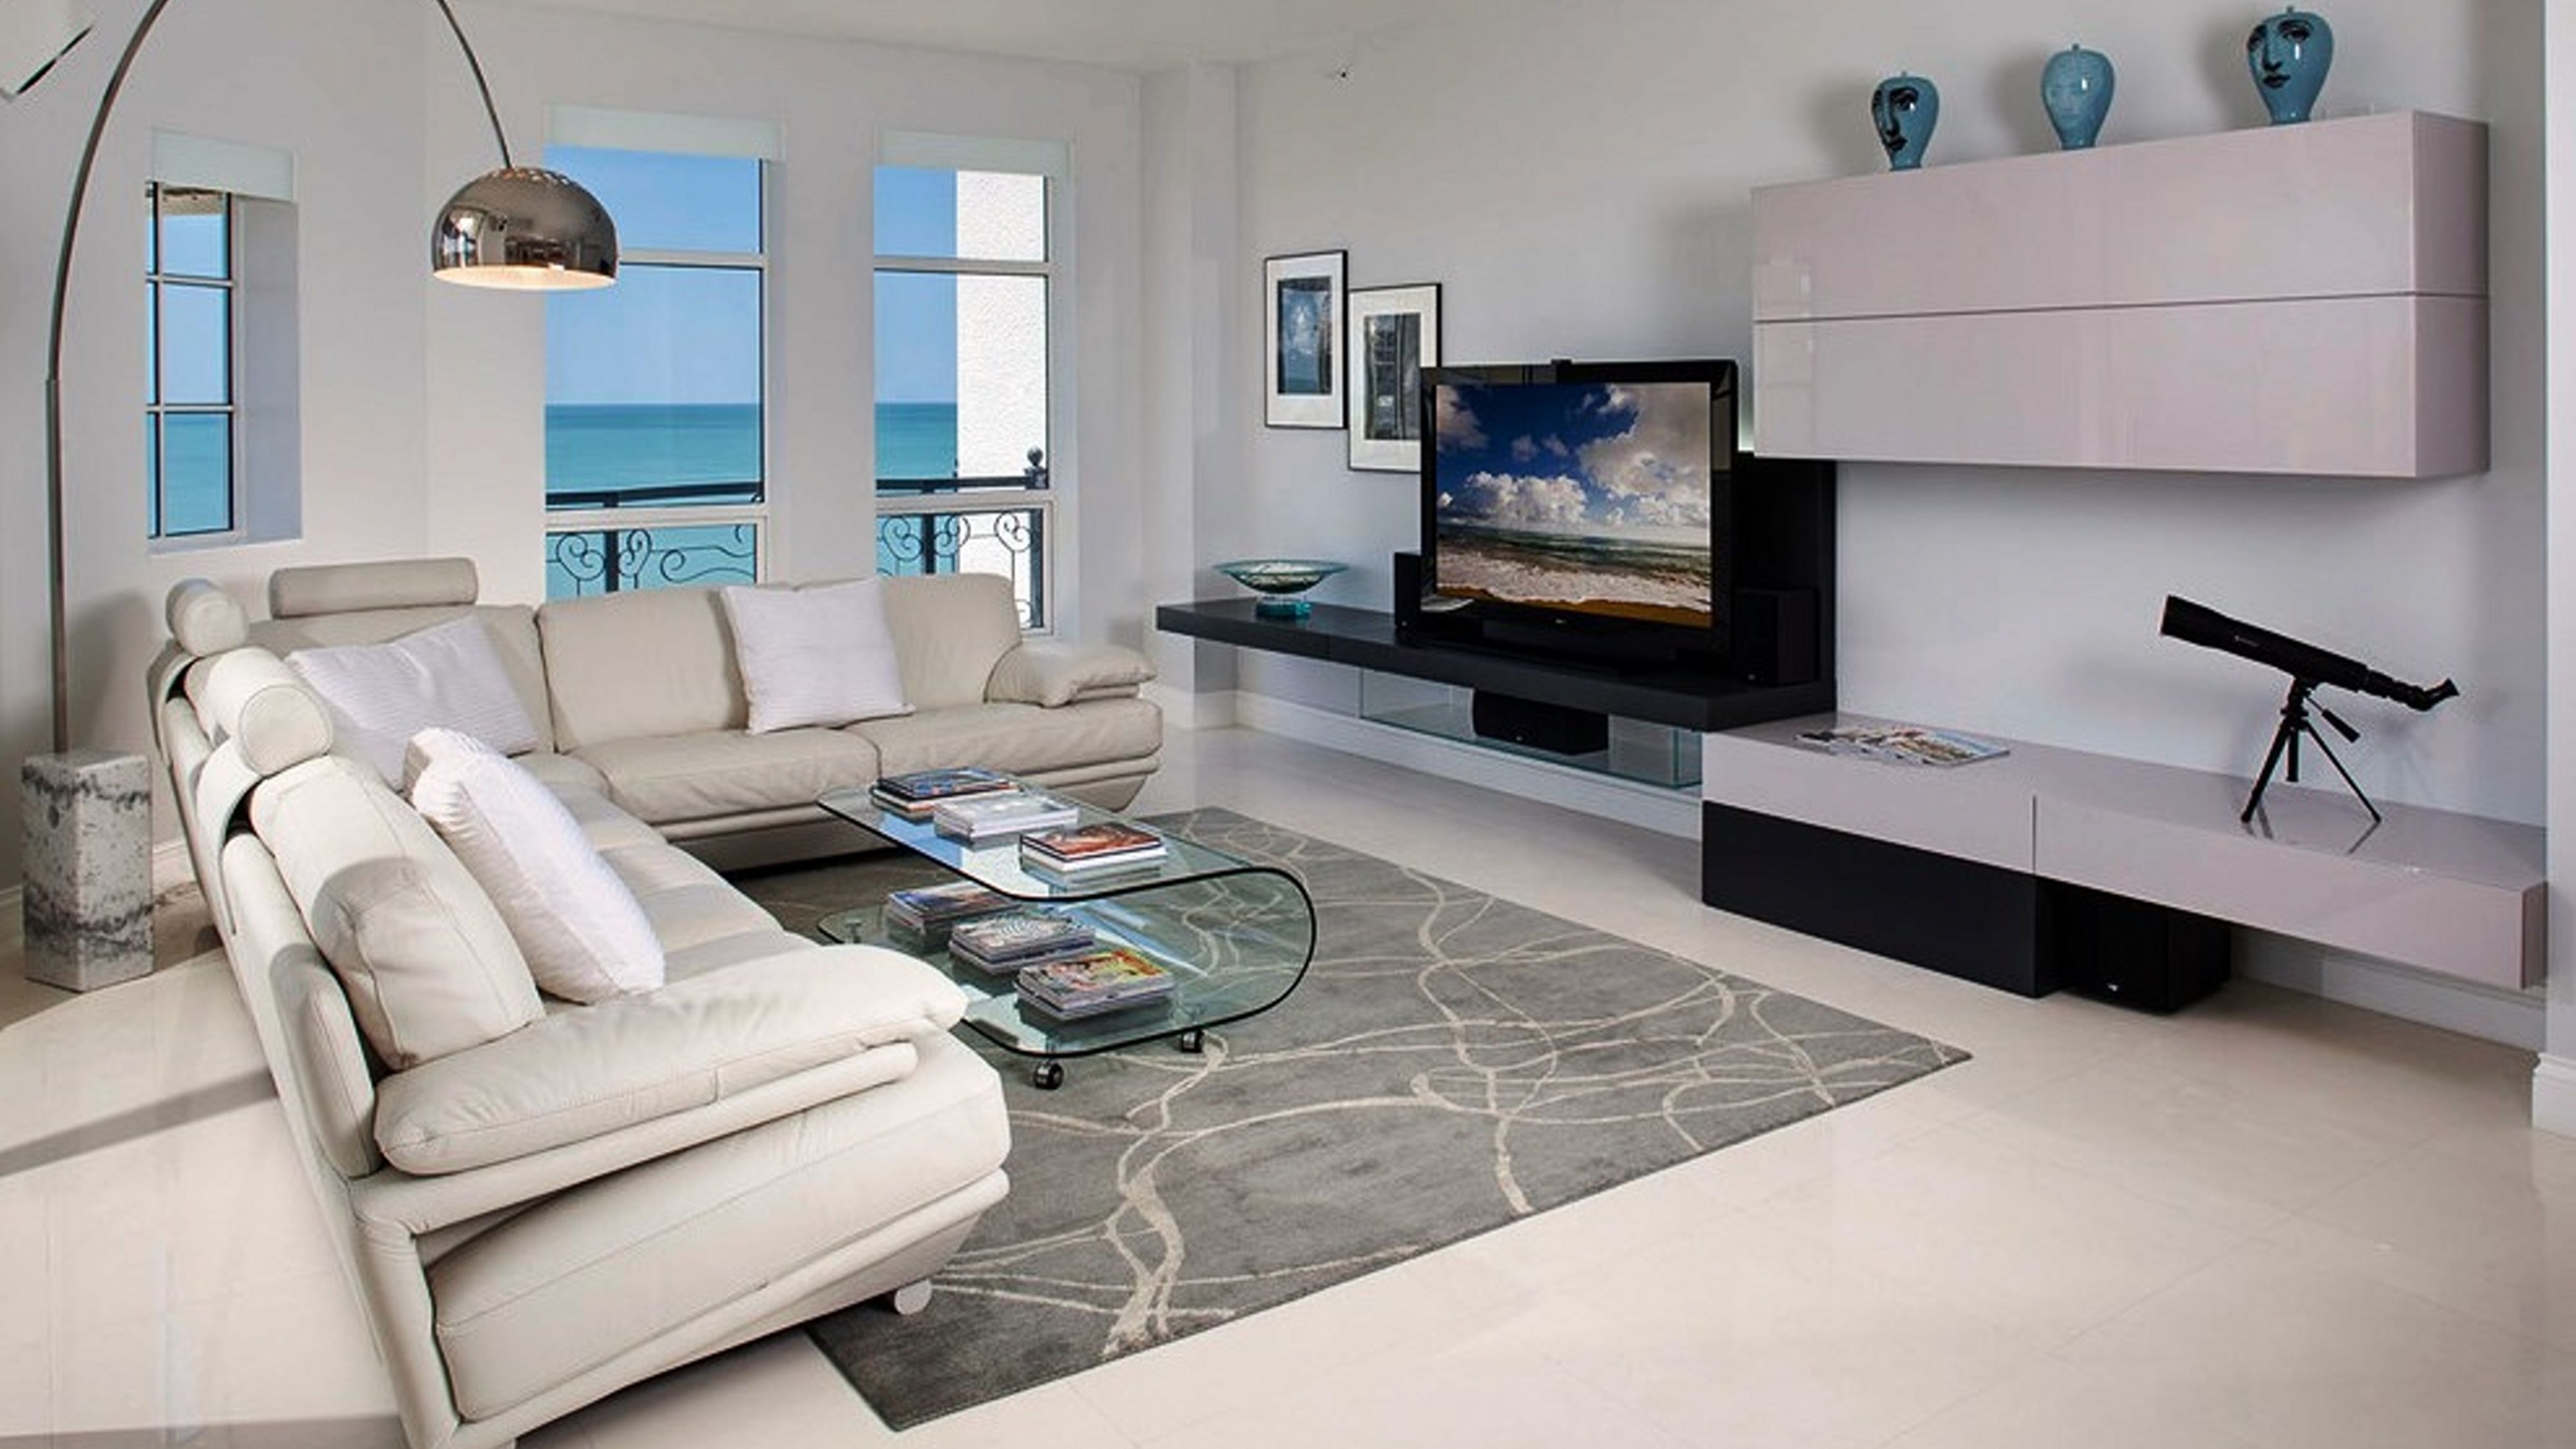 Luxury furniture is perceived both as a commodity and also as an